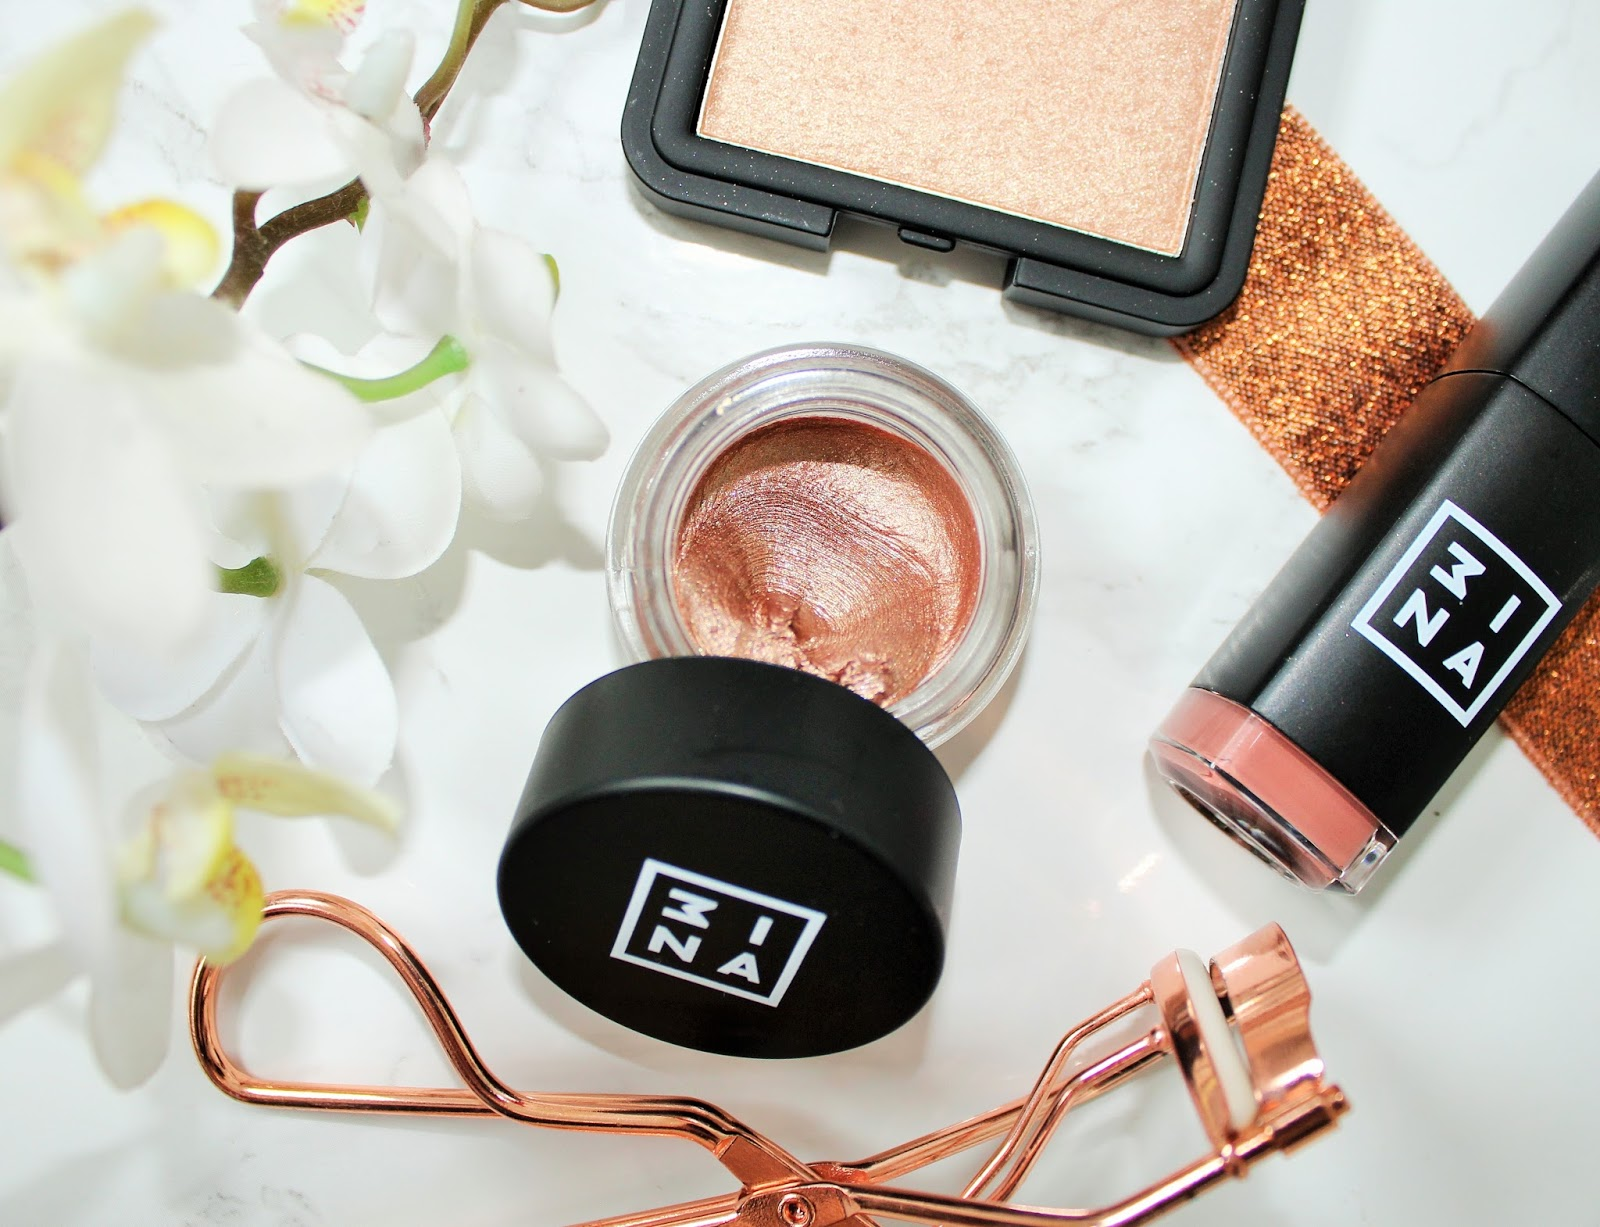 3ina bestselling makeup products - The Cream Eyeshadow 313